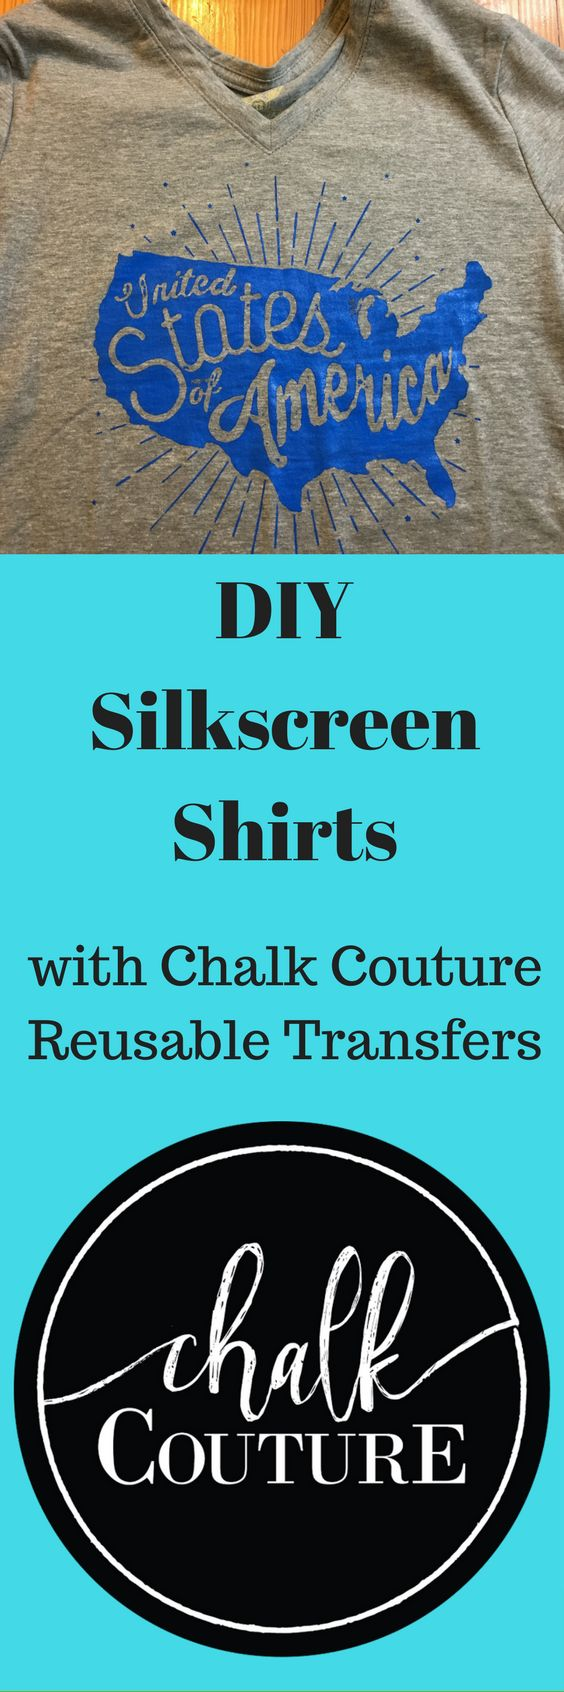 Learn how to make your T-shirts using reusable silkscreen transfers with Silkscreen Ink.   DIY, Do It Yourself, Tees, T-shirt, T-shirts, fabric, clothing, clothes, cloth, pillow case cases, hat, hats, ball cap, onesie, kids, kid, banner, reusable, stencil, sign, signs, ink, speedball, shirt, shirts, tank, tanks